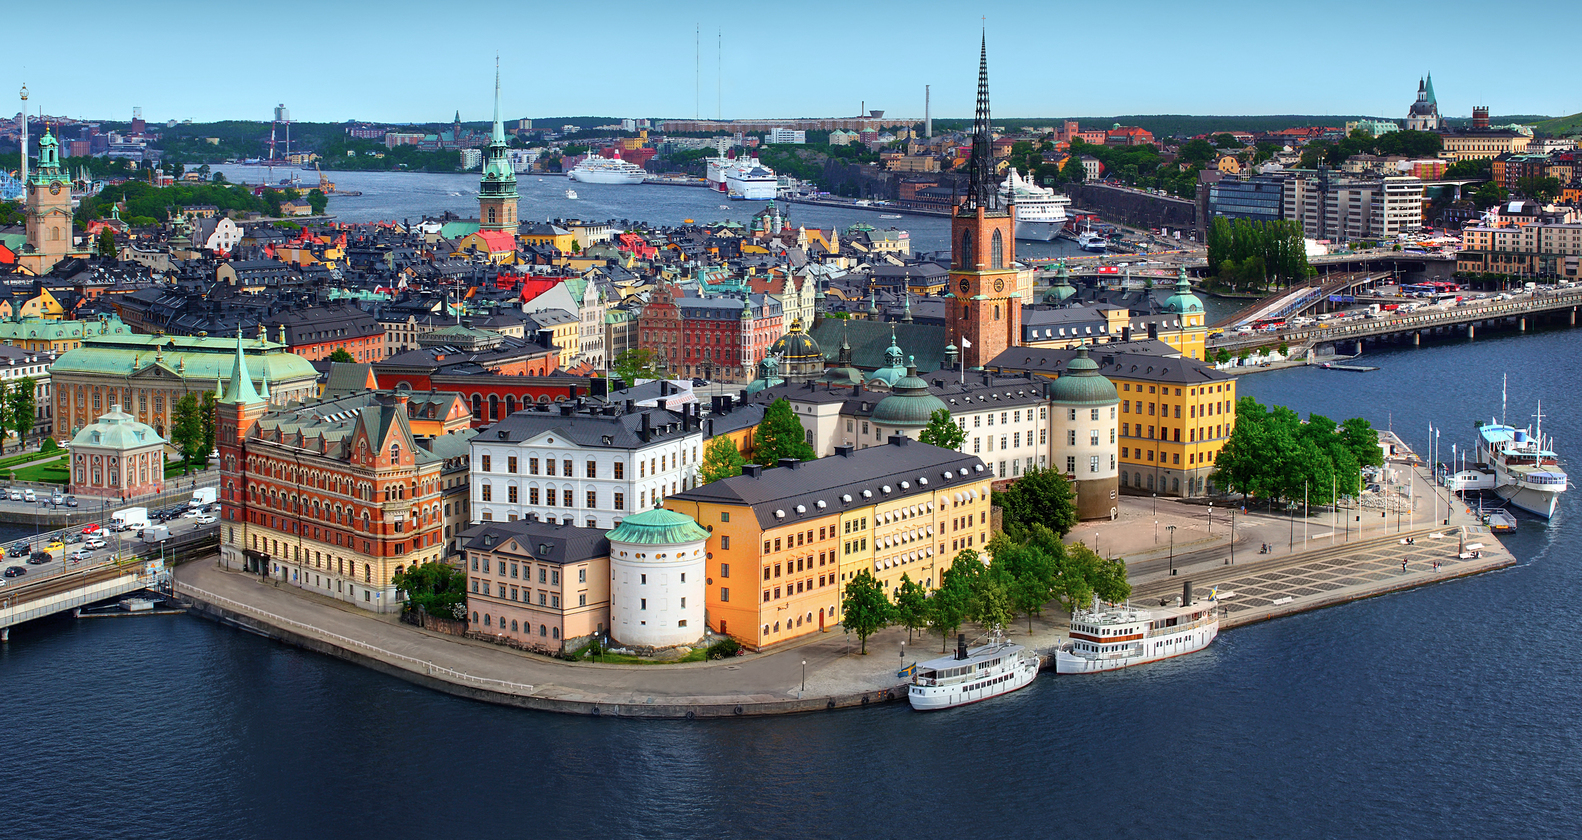 Architectural Adventures: Scandinavia Architectural Tour,Stockholm, Sweden